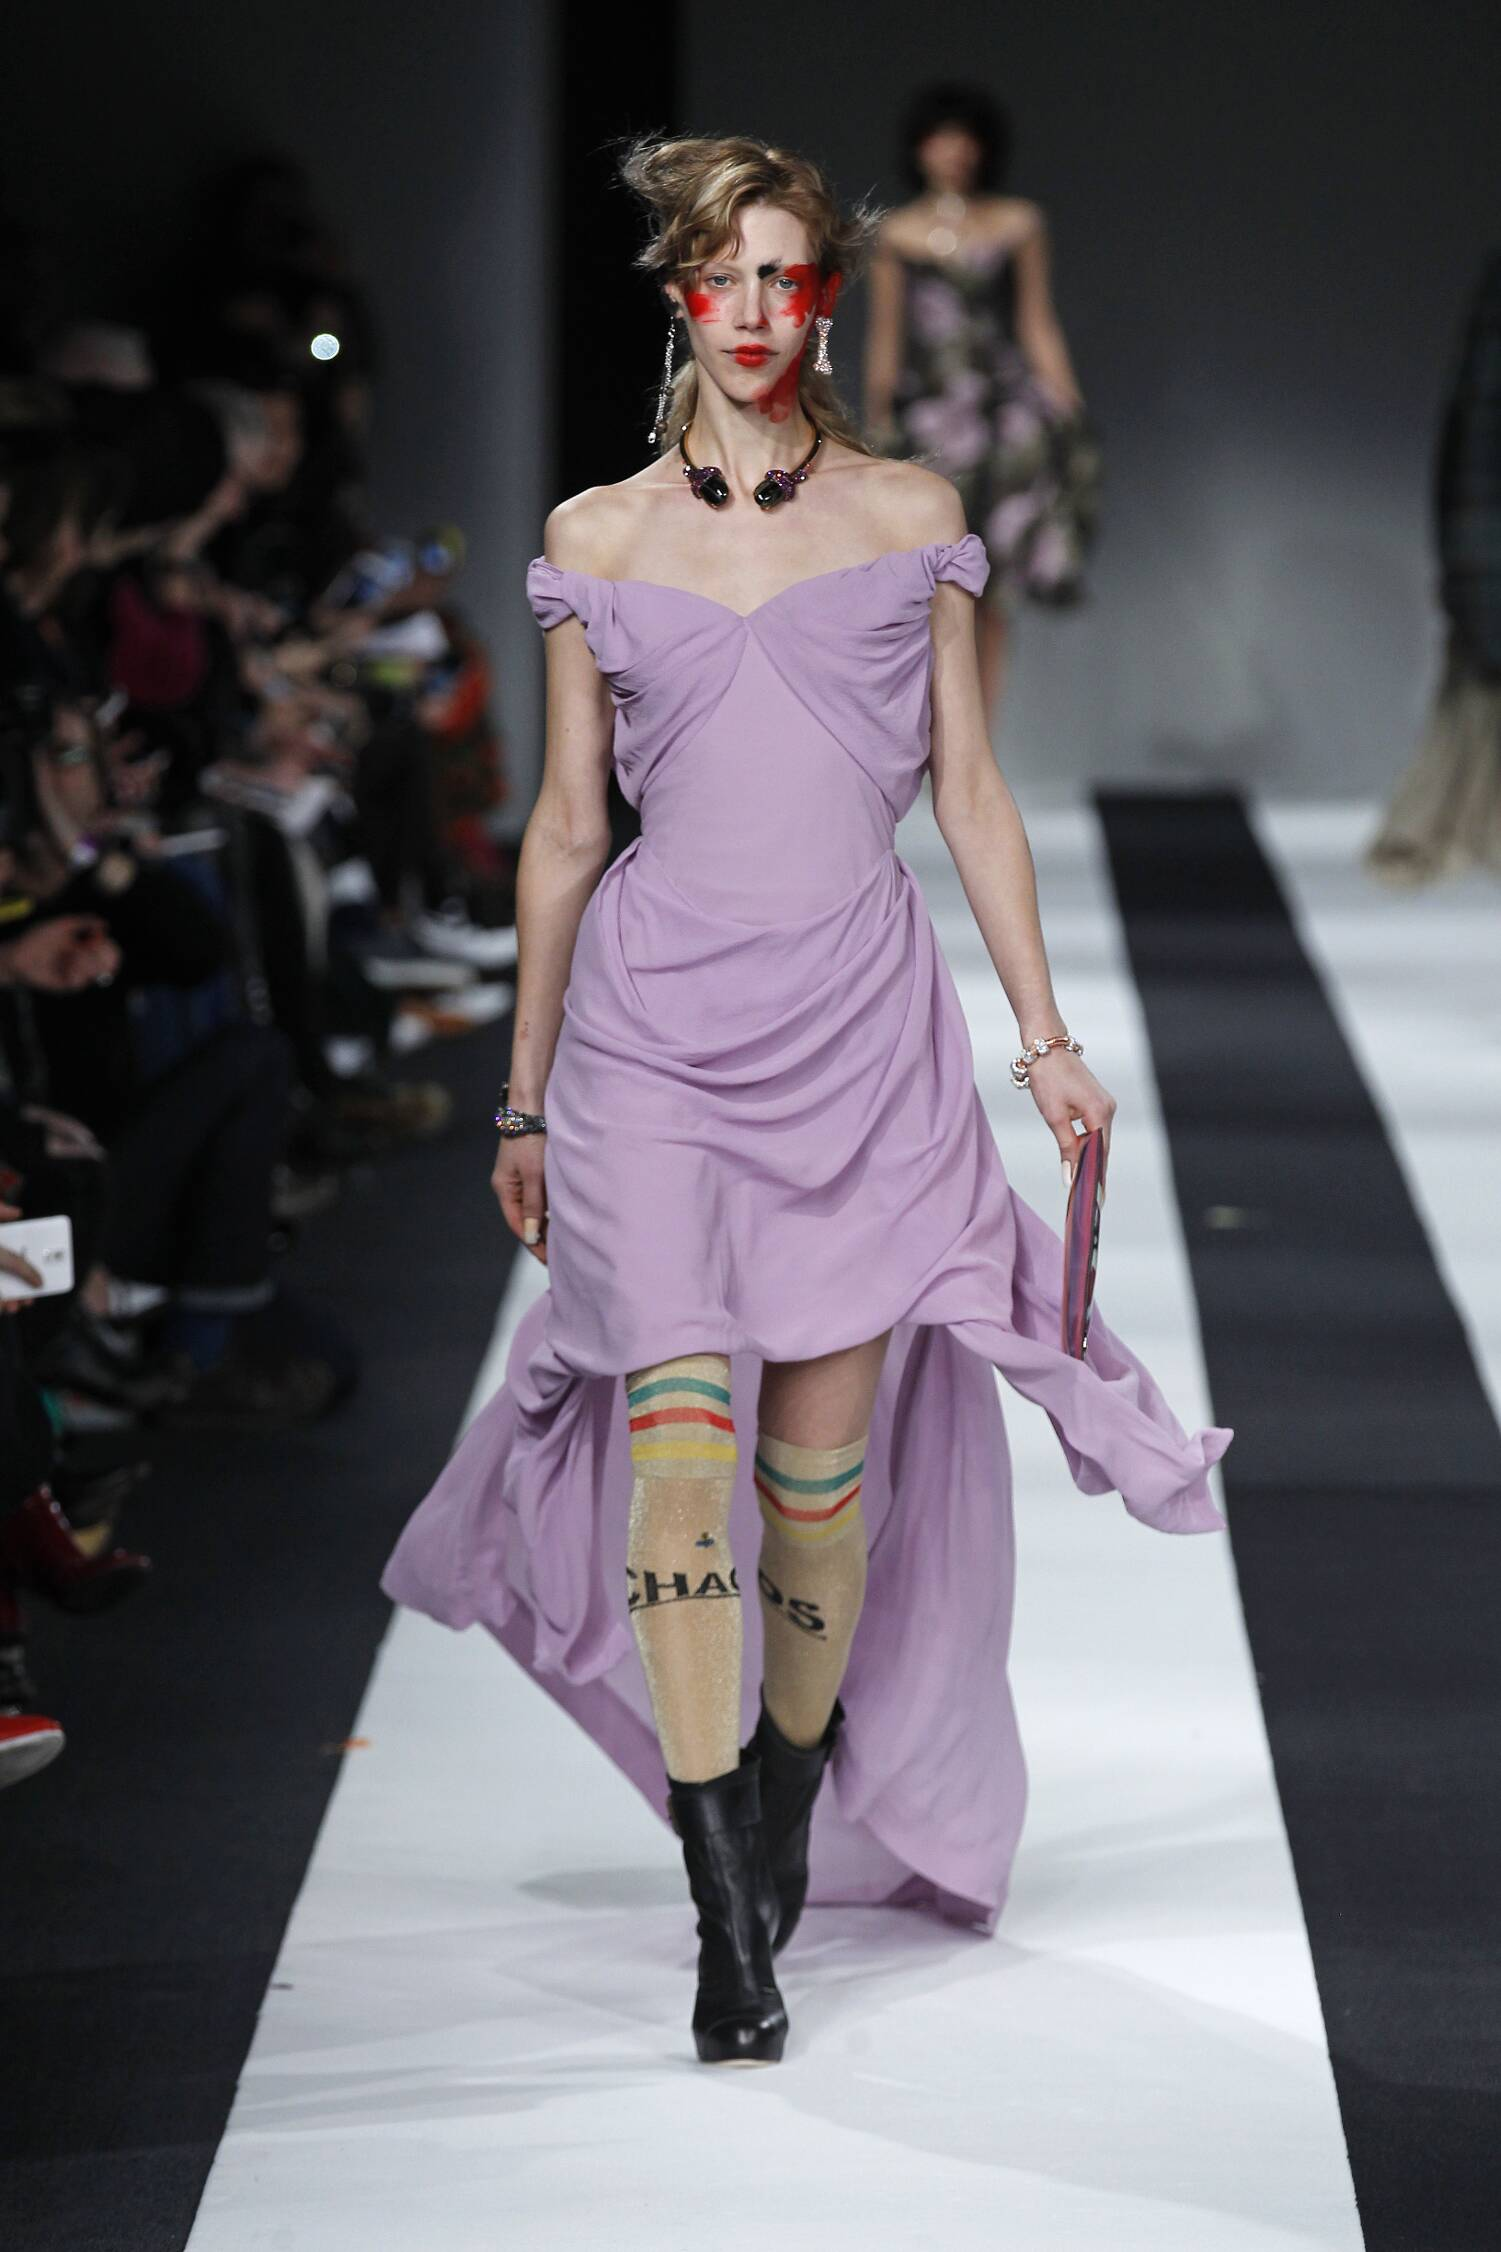 Fall Vivienne Westwood Red Label Collection Fashion Women Model